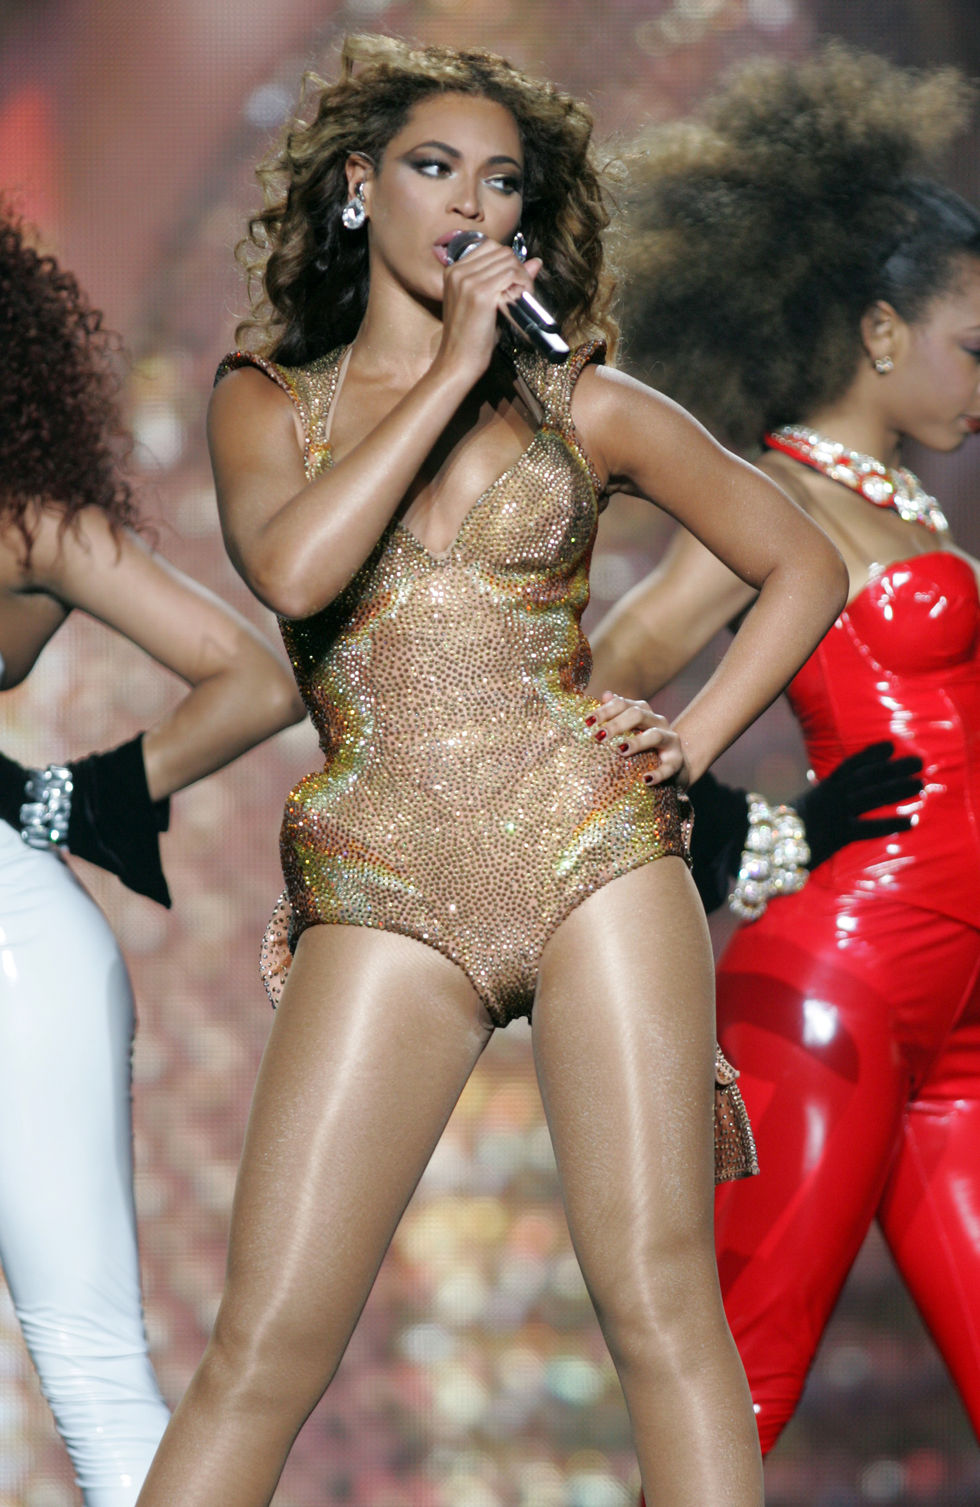 beyonce-performs-in-concert-at-madison-square-garden-01